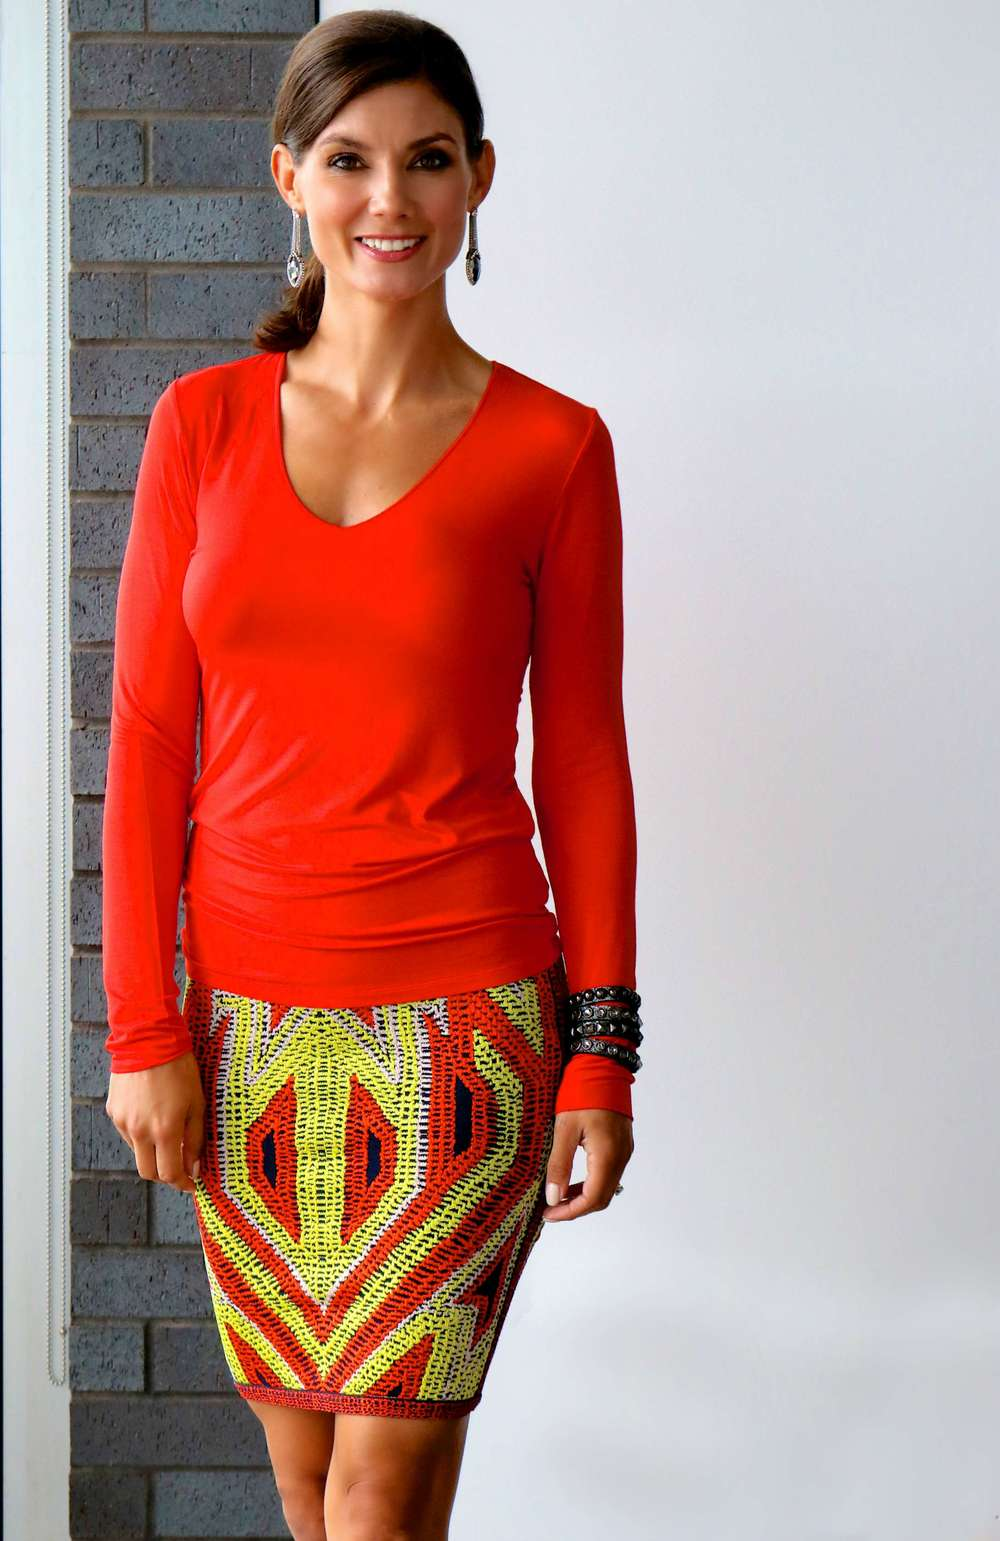 Majestic Filatures V Neck Long Sleeve Top ,  Herve Leger Ola Jacquard Skirt ,  Chain Drop Earrings